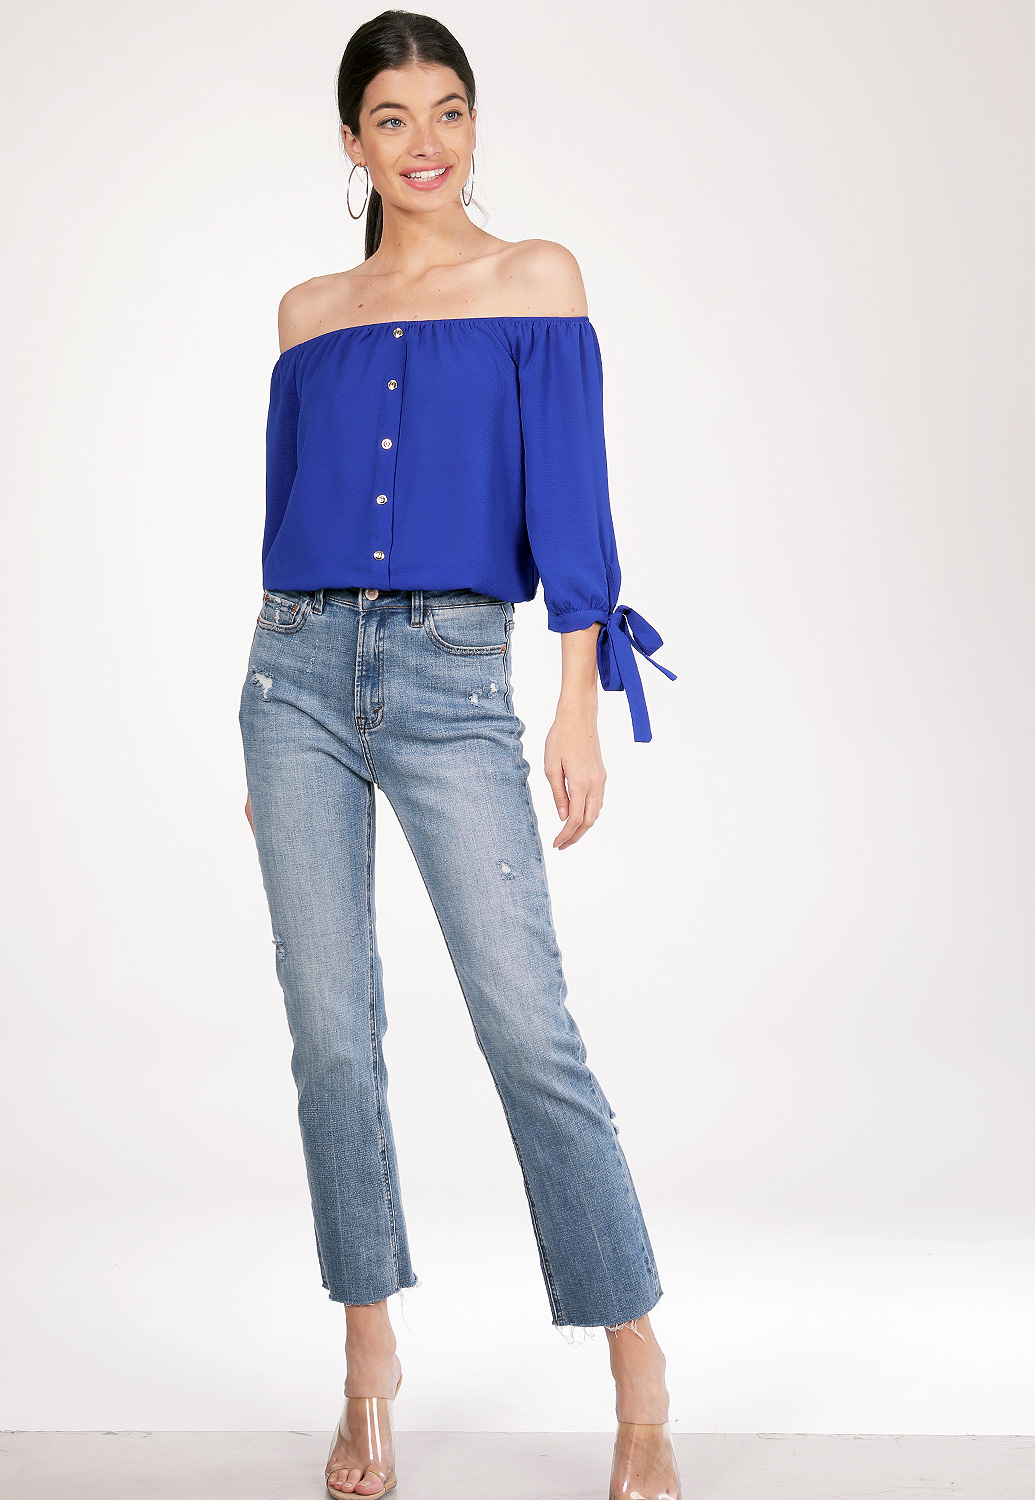 Off-The-Shoulder Blouse Top